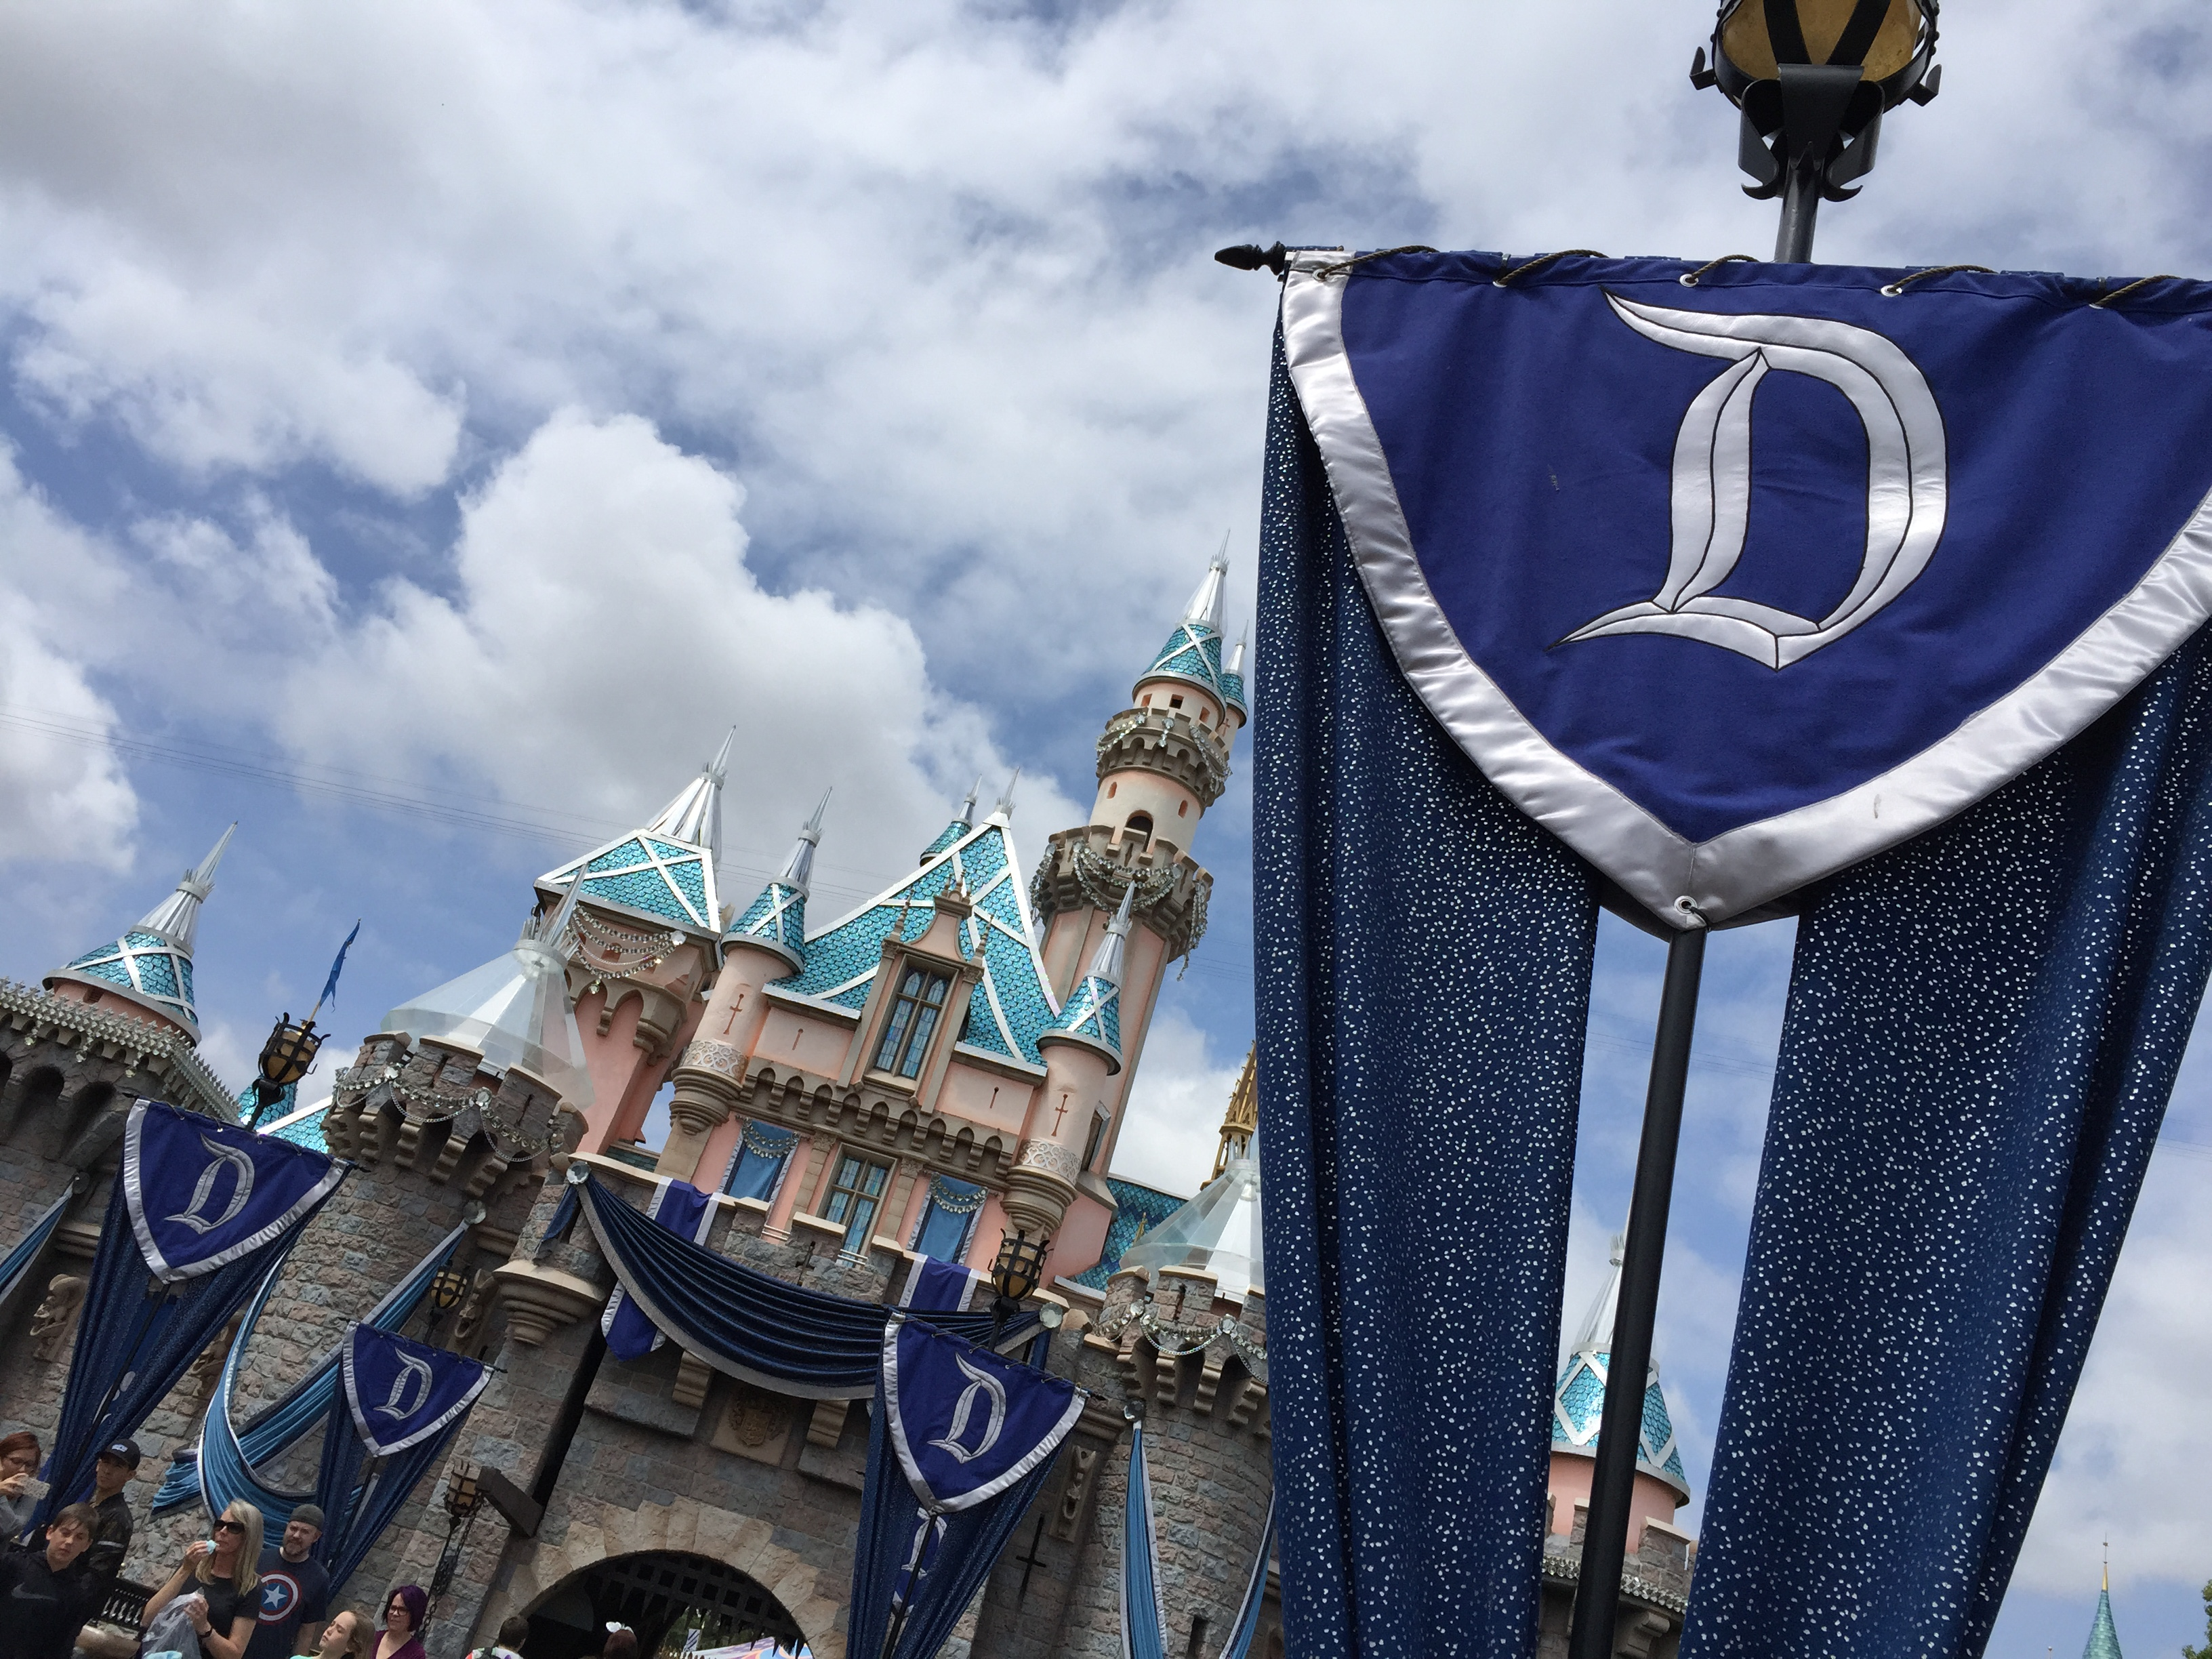 Celebrating 60 Years of Disneyland with 60 Fun Facts!